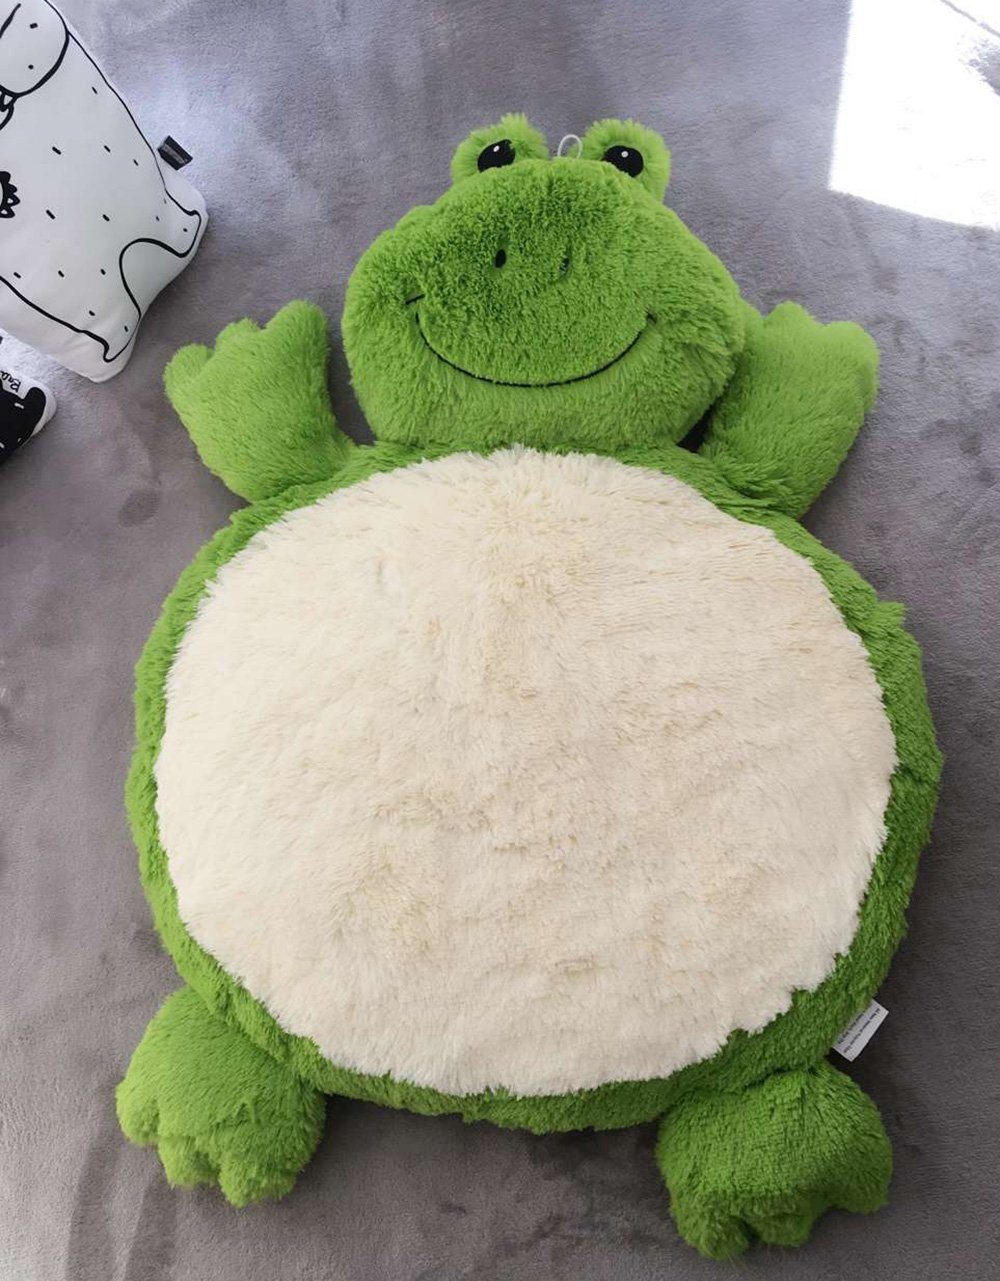 Kally Shop Baby Round Crawling Mat Cartoon Rugs Animal Design Kids Play Pad Extra-Thick Non-Toxic Soft Blanket Cushion for Kids Room Decoration (frog)